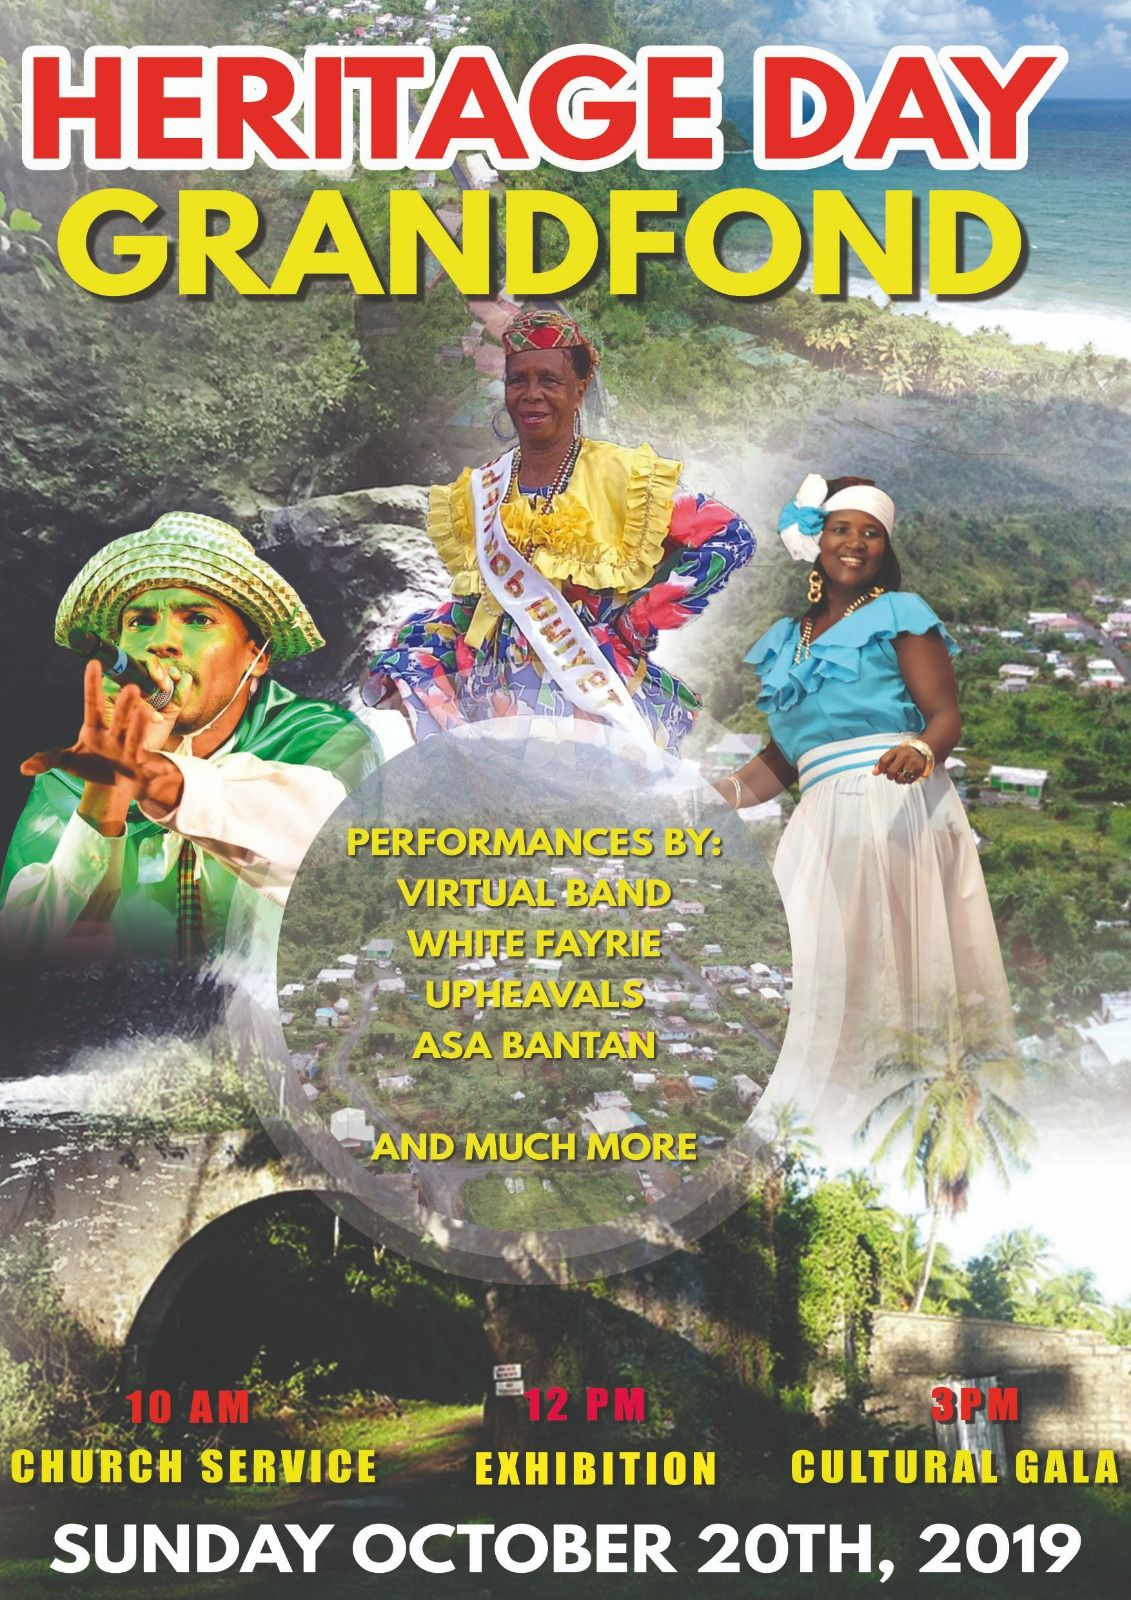 Heritage Day Dominica 2019 in Grand Fond